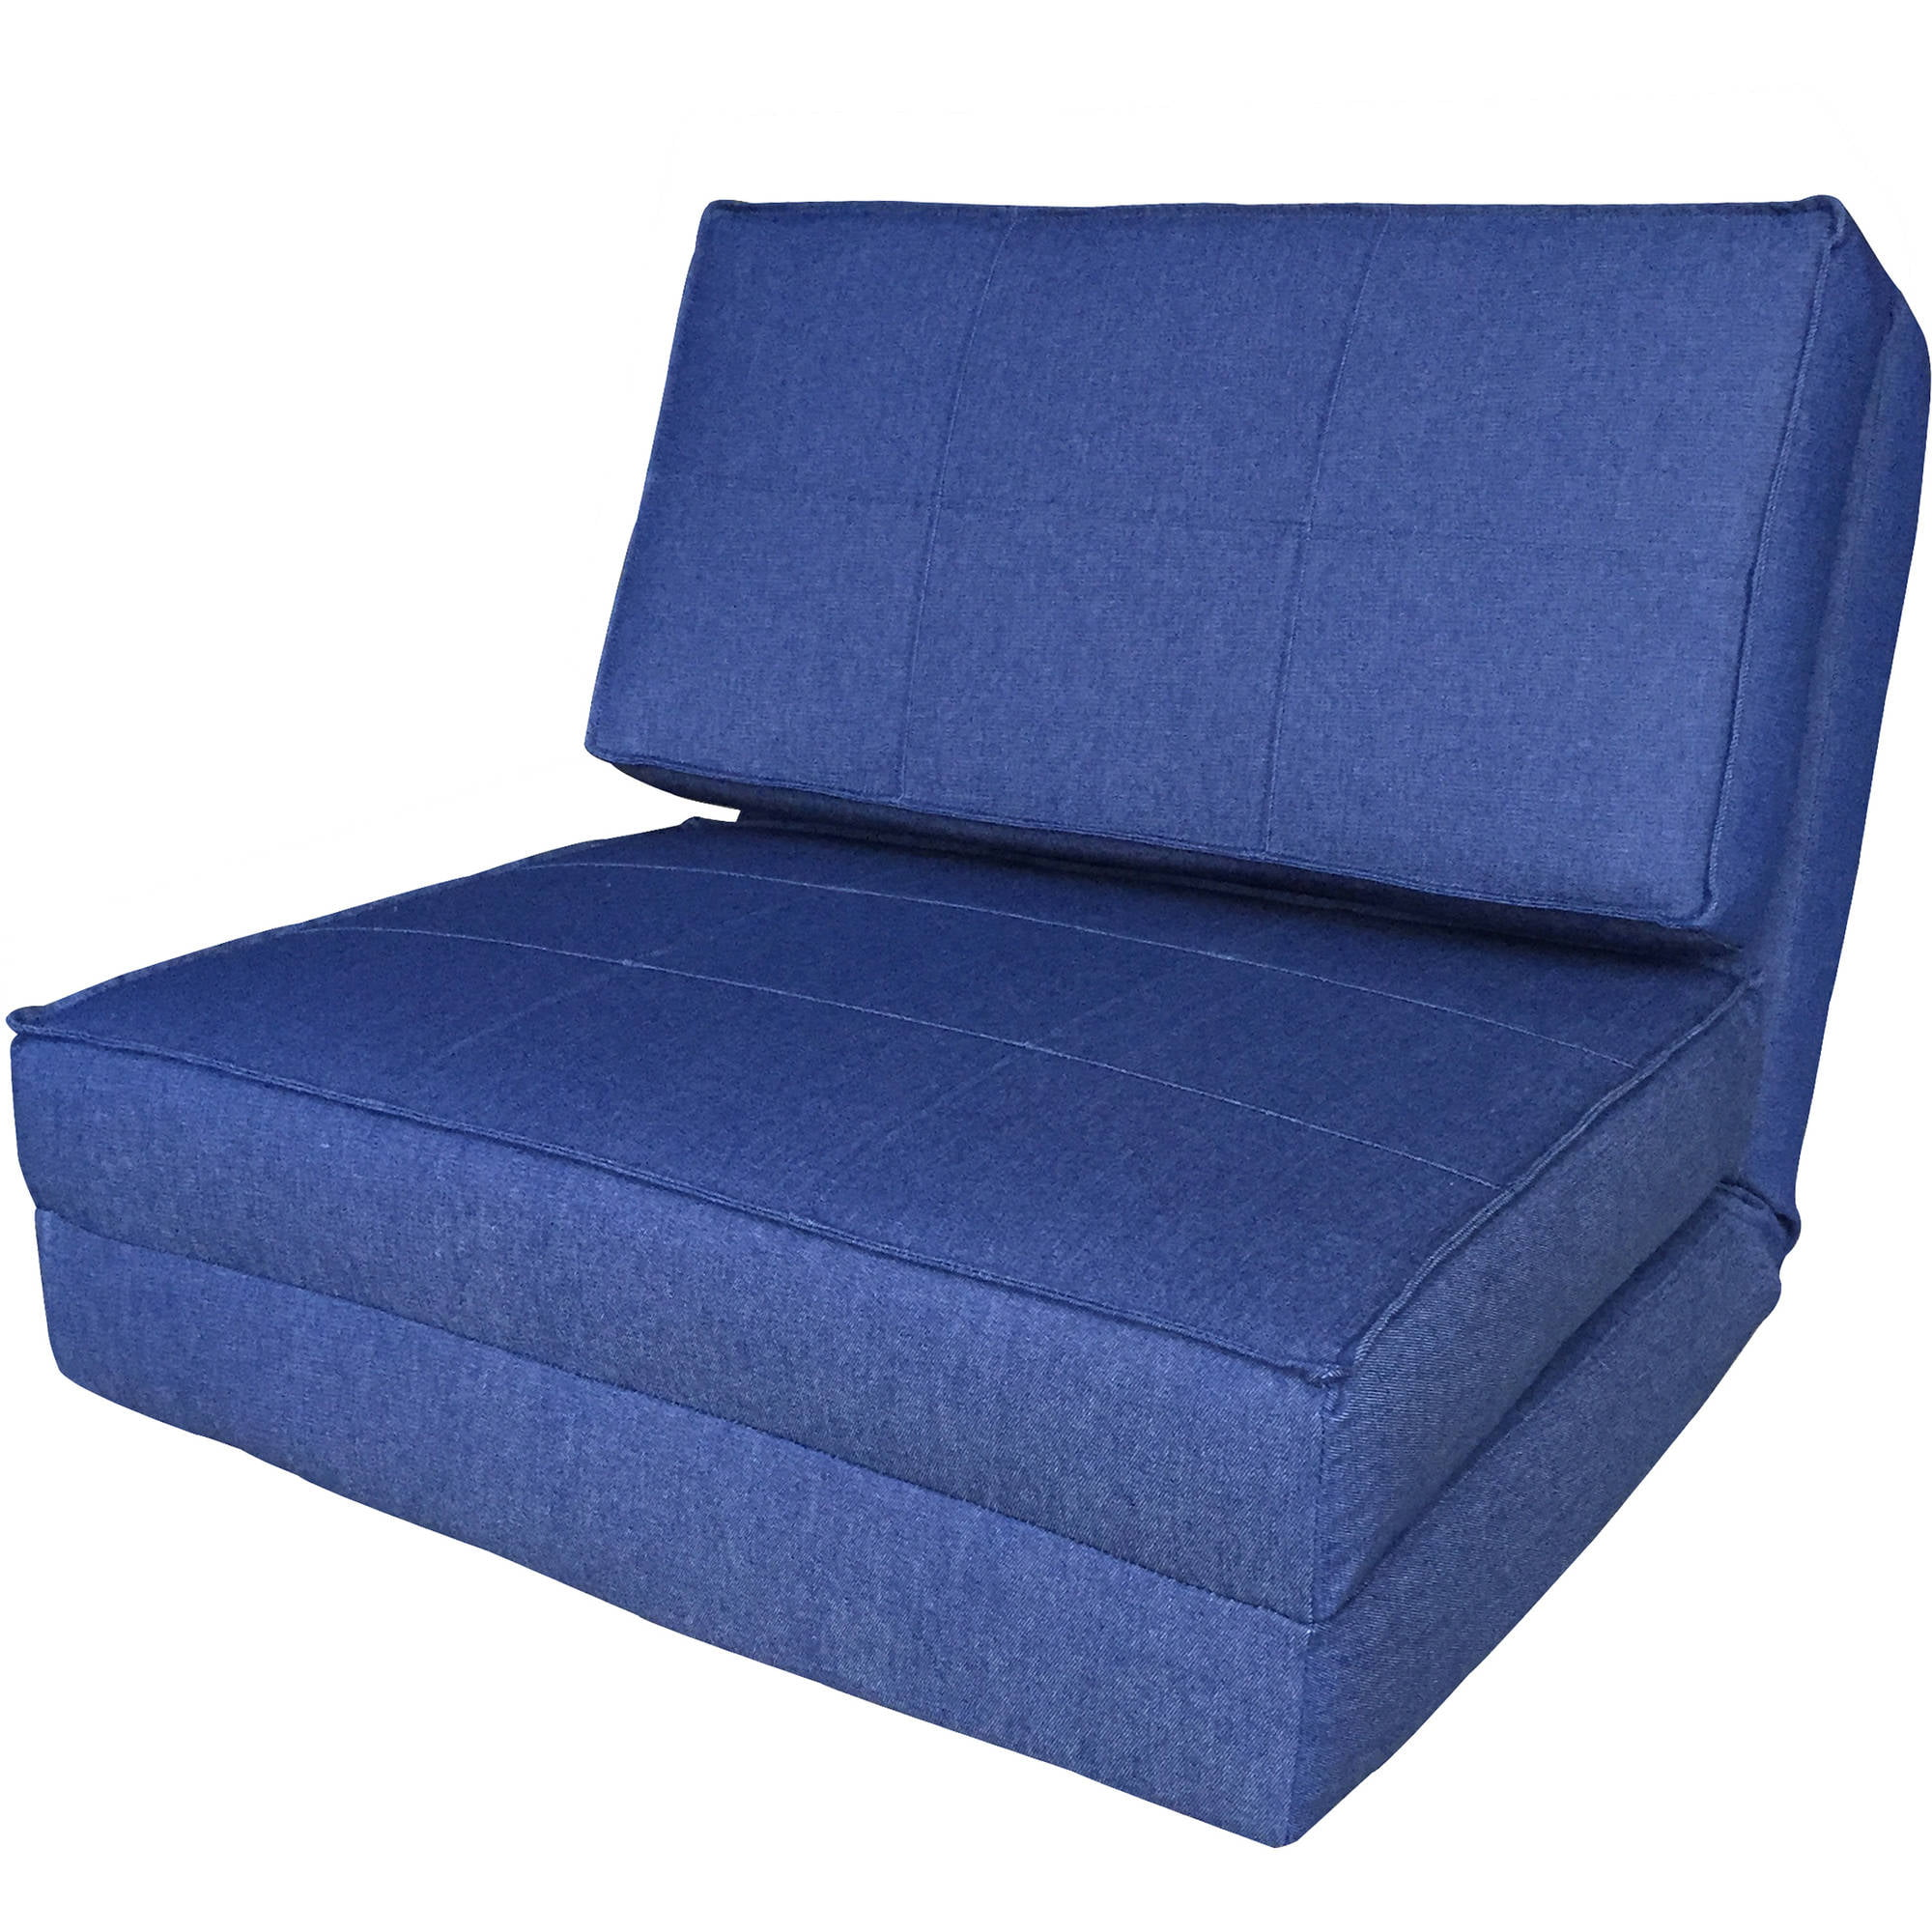 Bed chair pillow walmart - Bed Chair Pillow Walmart 37